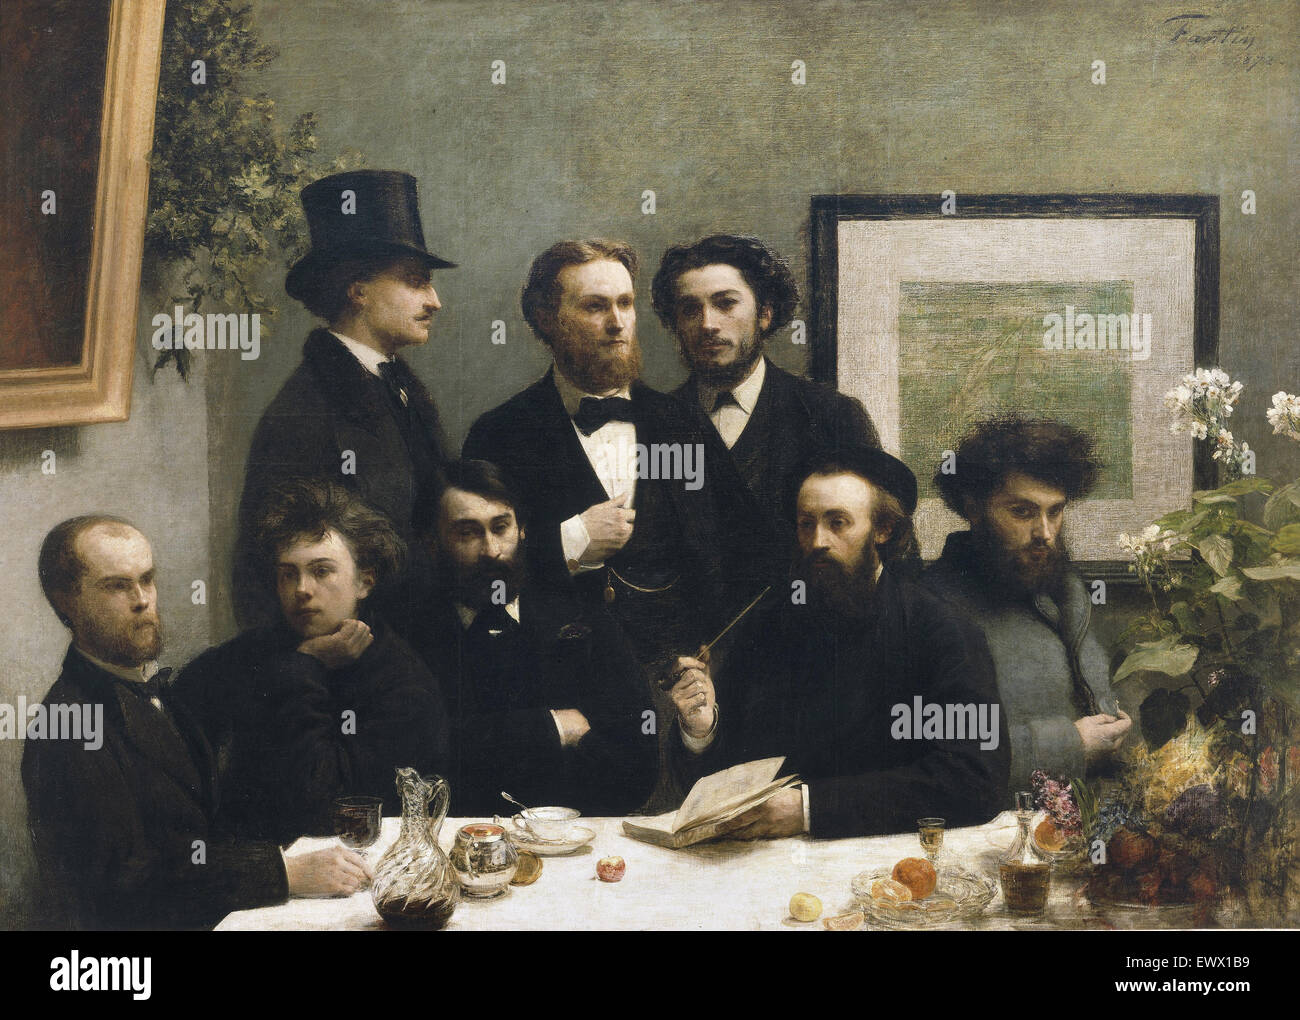 Henri Fantin-Latour, By the Table 1872 Oil on canvas. Musee d'Orsay, Paris, France. - Stock Image